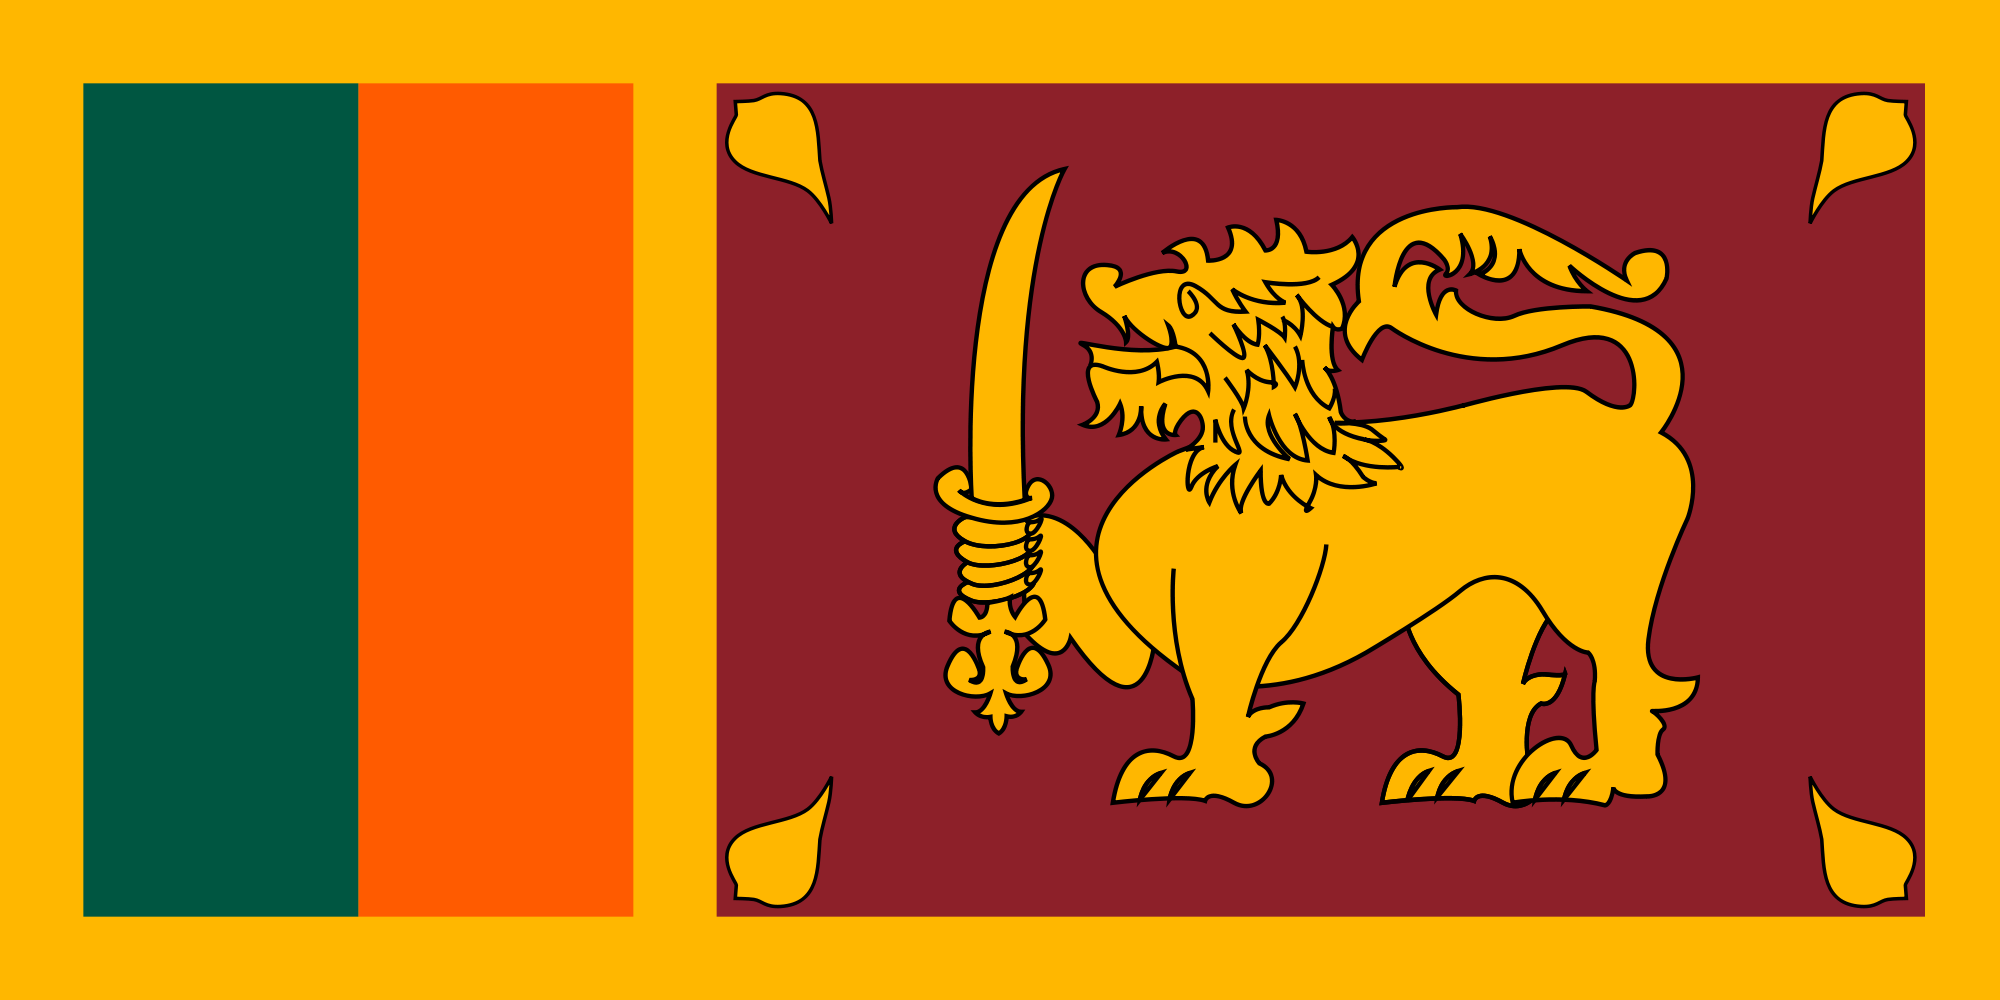 Sri Lanka E-Visa Visa Application & Travel Information